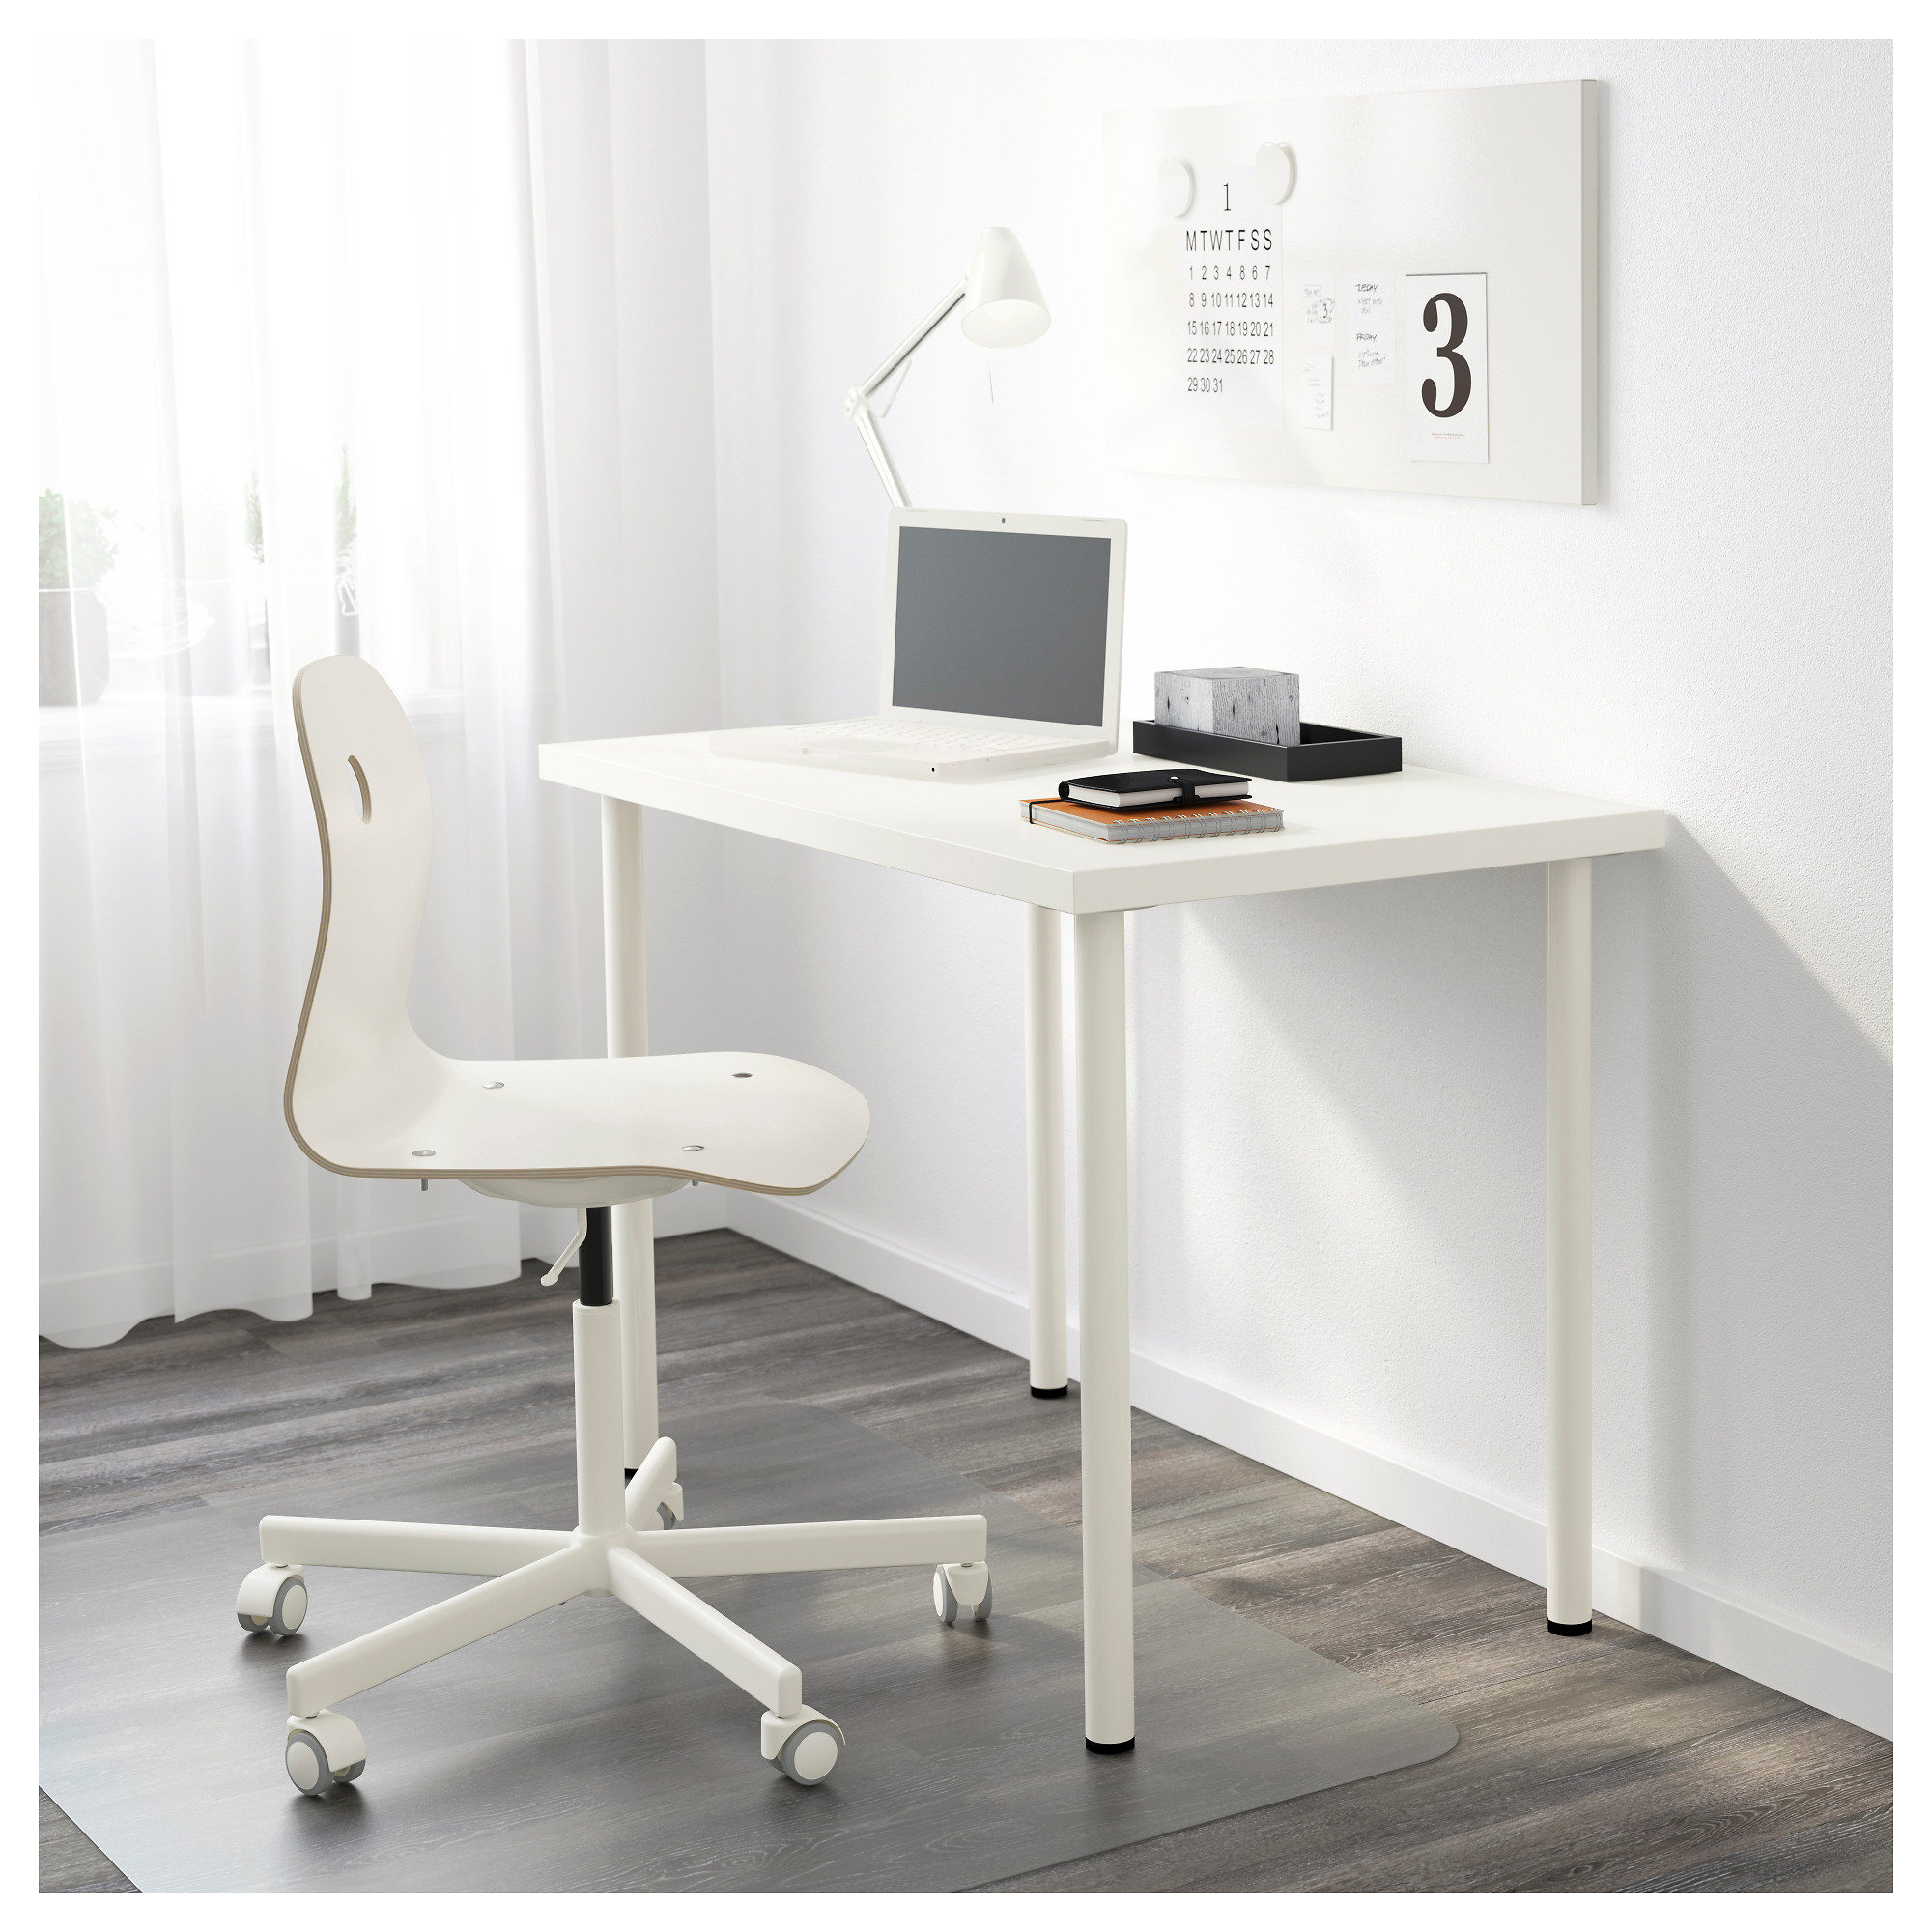 LINNMON / ADILS Table   White   IKEA